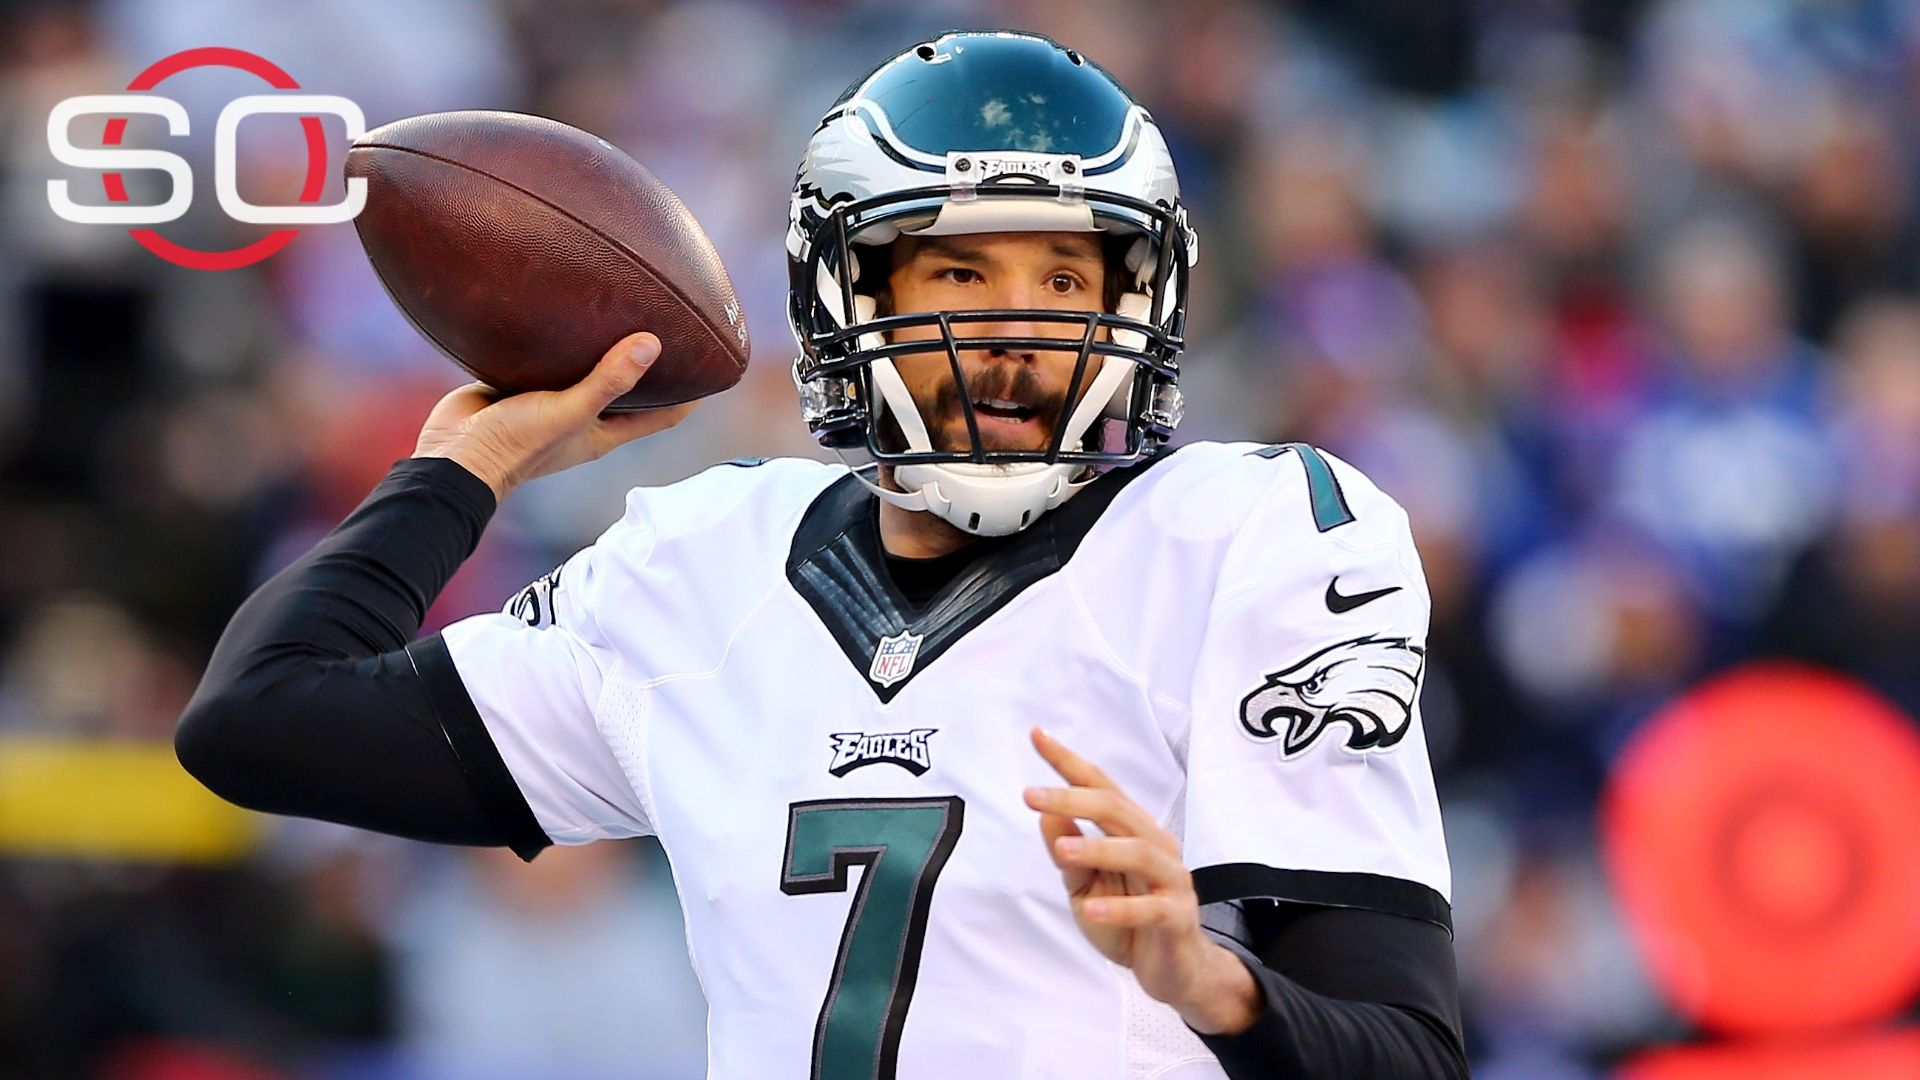 Schefter: Bradford not happy, wants out